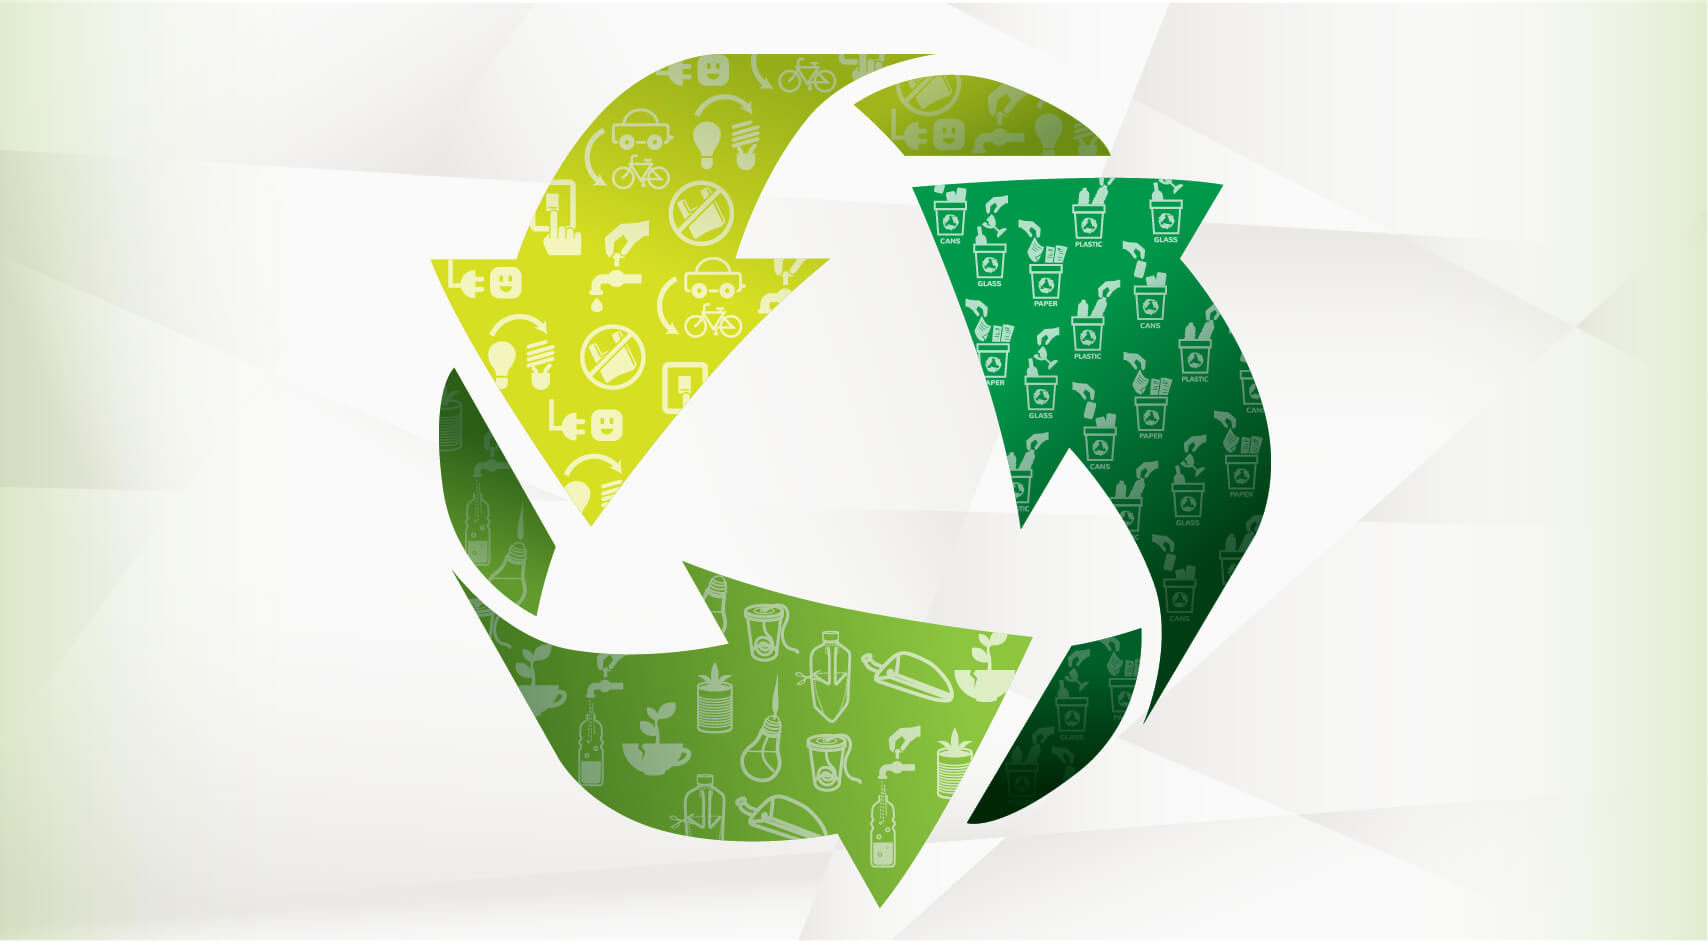 Is 'Zero-Waste' a consumer trend or an eco-movement?